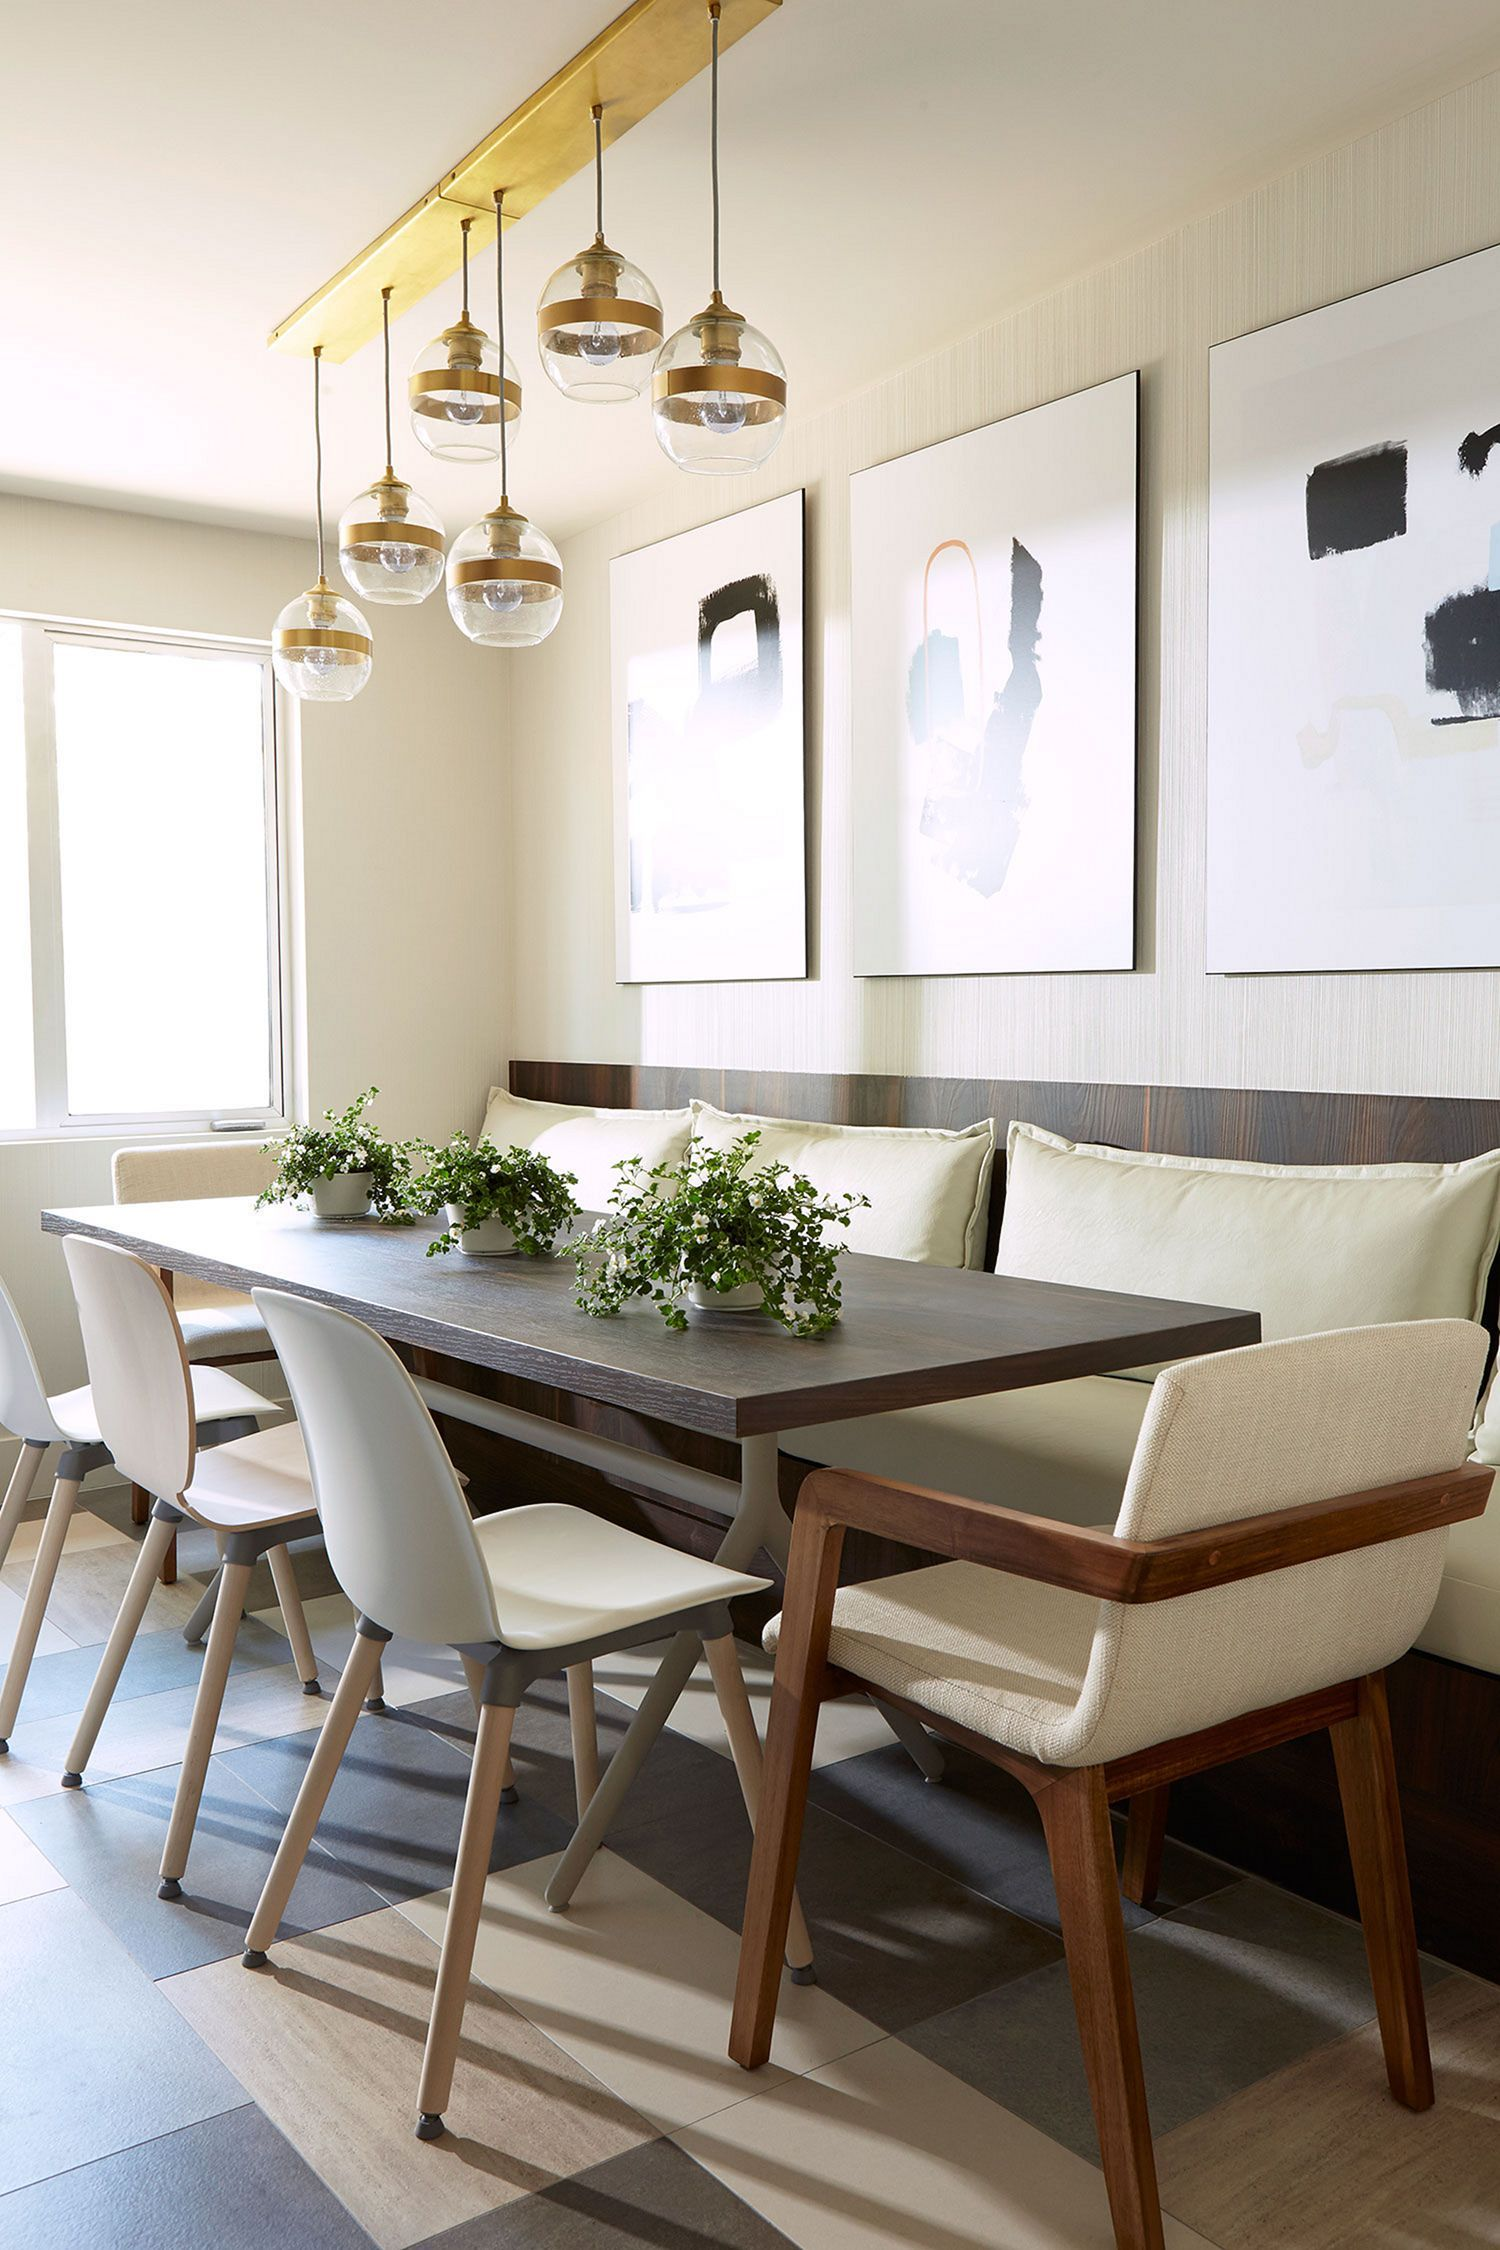 50 Awesome Rustic Dining Room Lighting Ideas Minimalist Dining Room Dining Room Makeover Rustic Dining Room